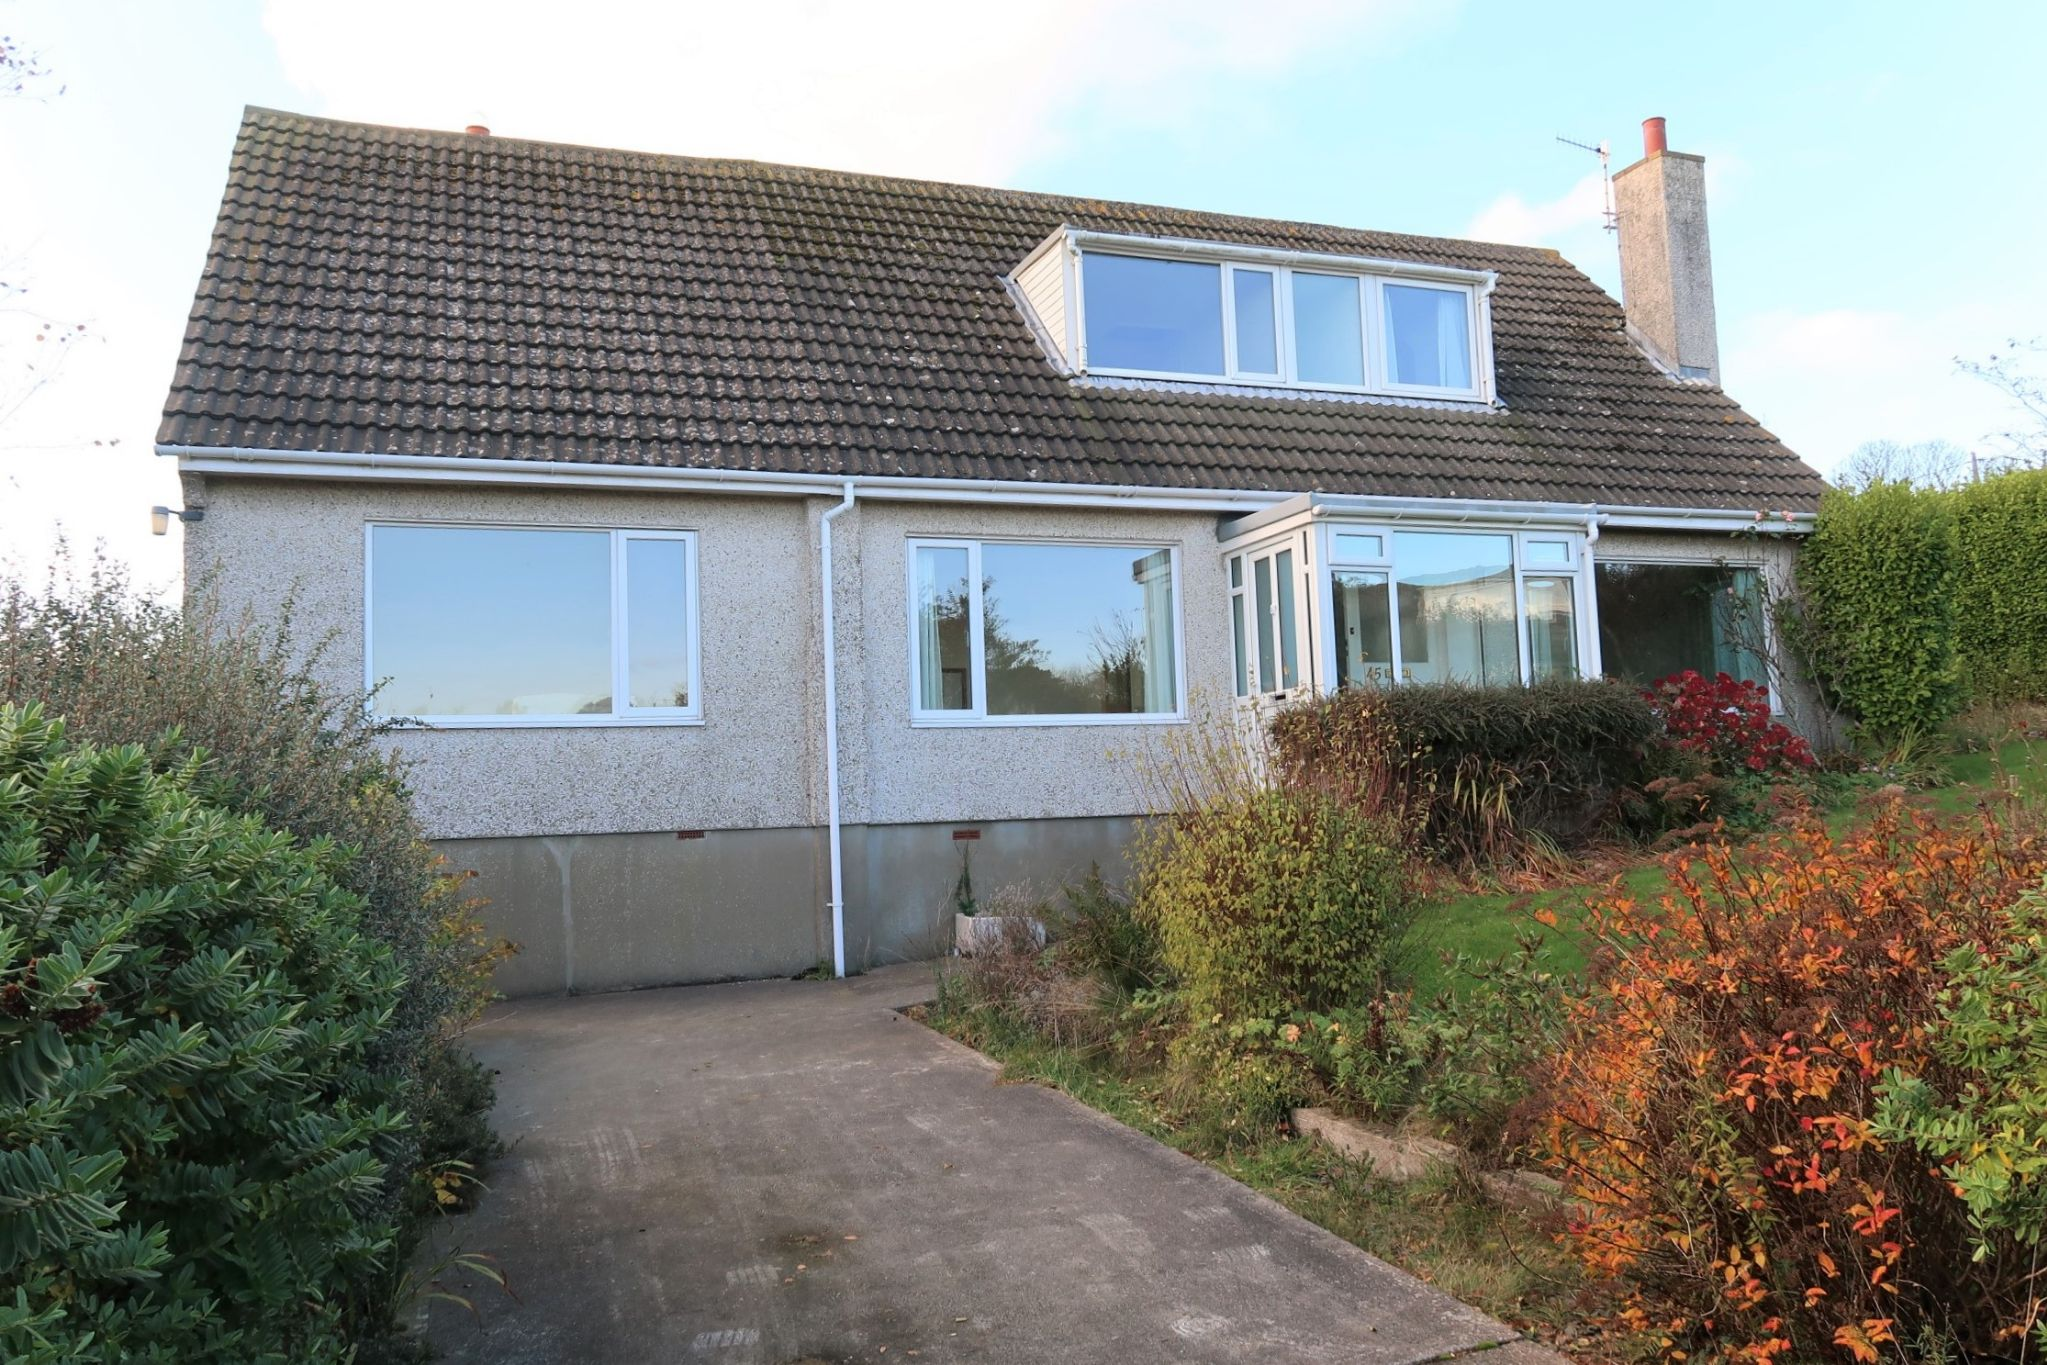 4 bedroom detached bungalow Sold in Surby,port Erin - Photograph 7